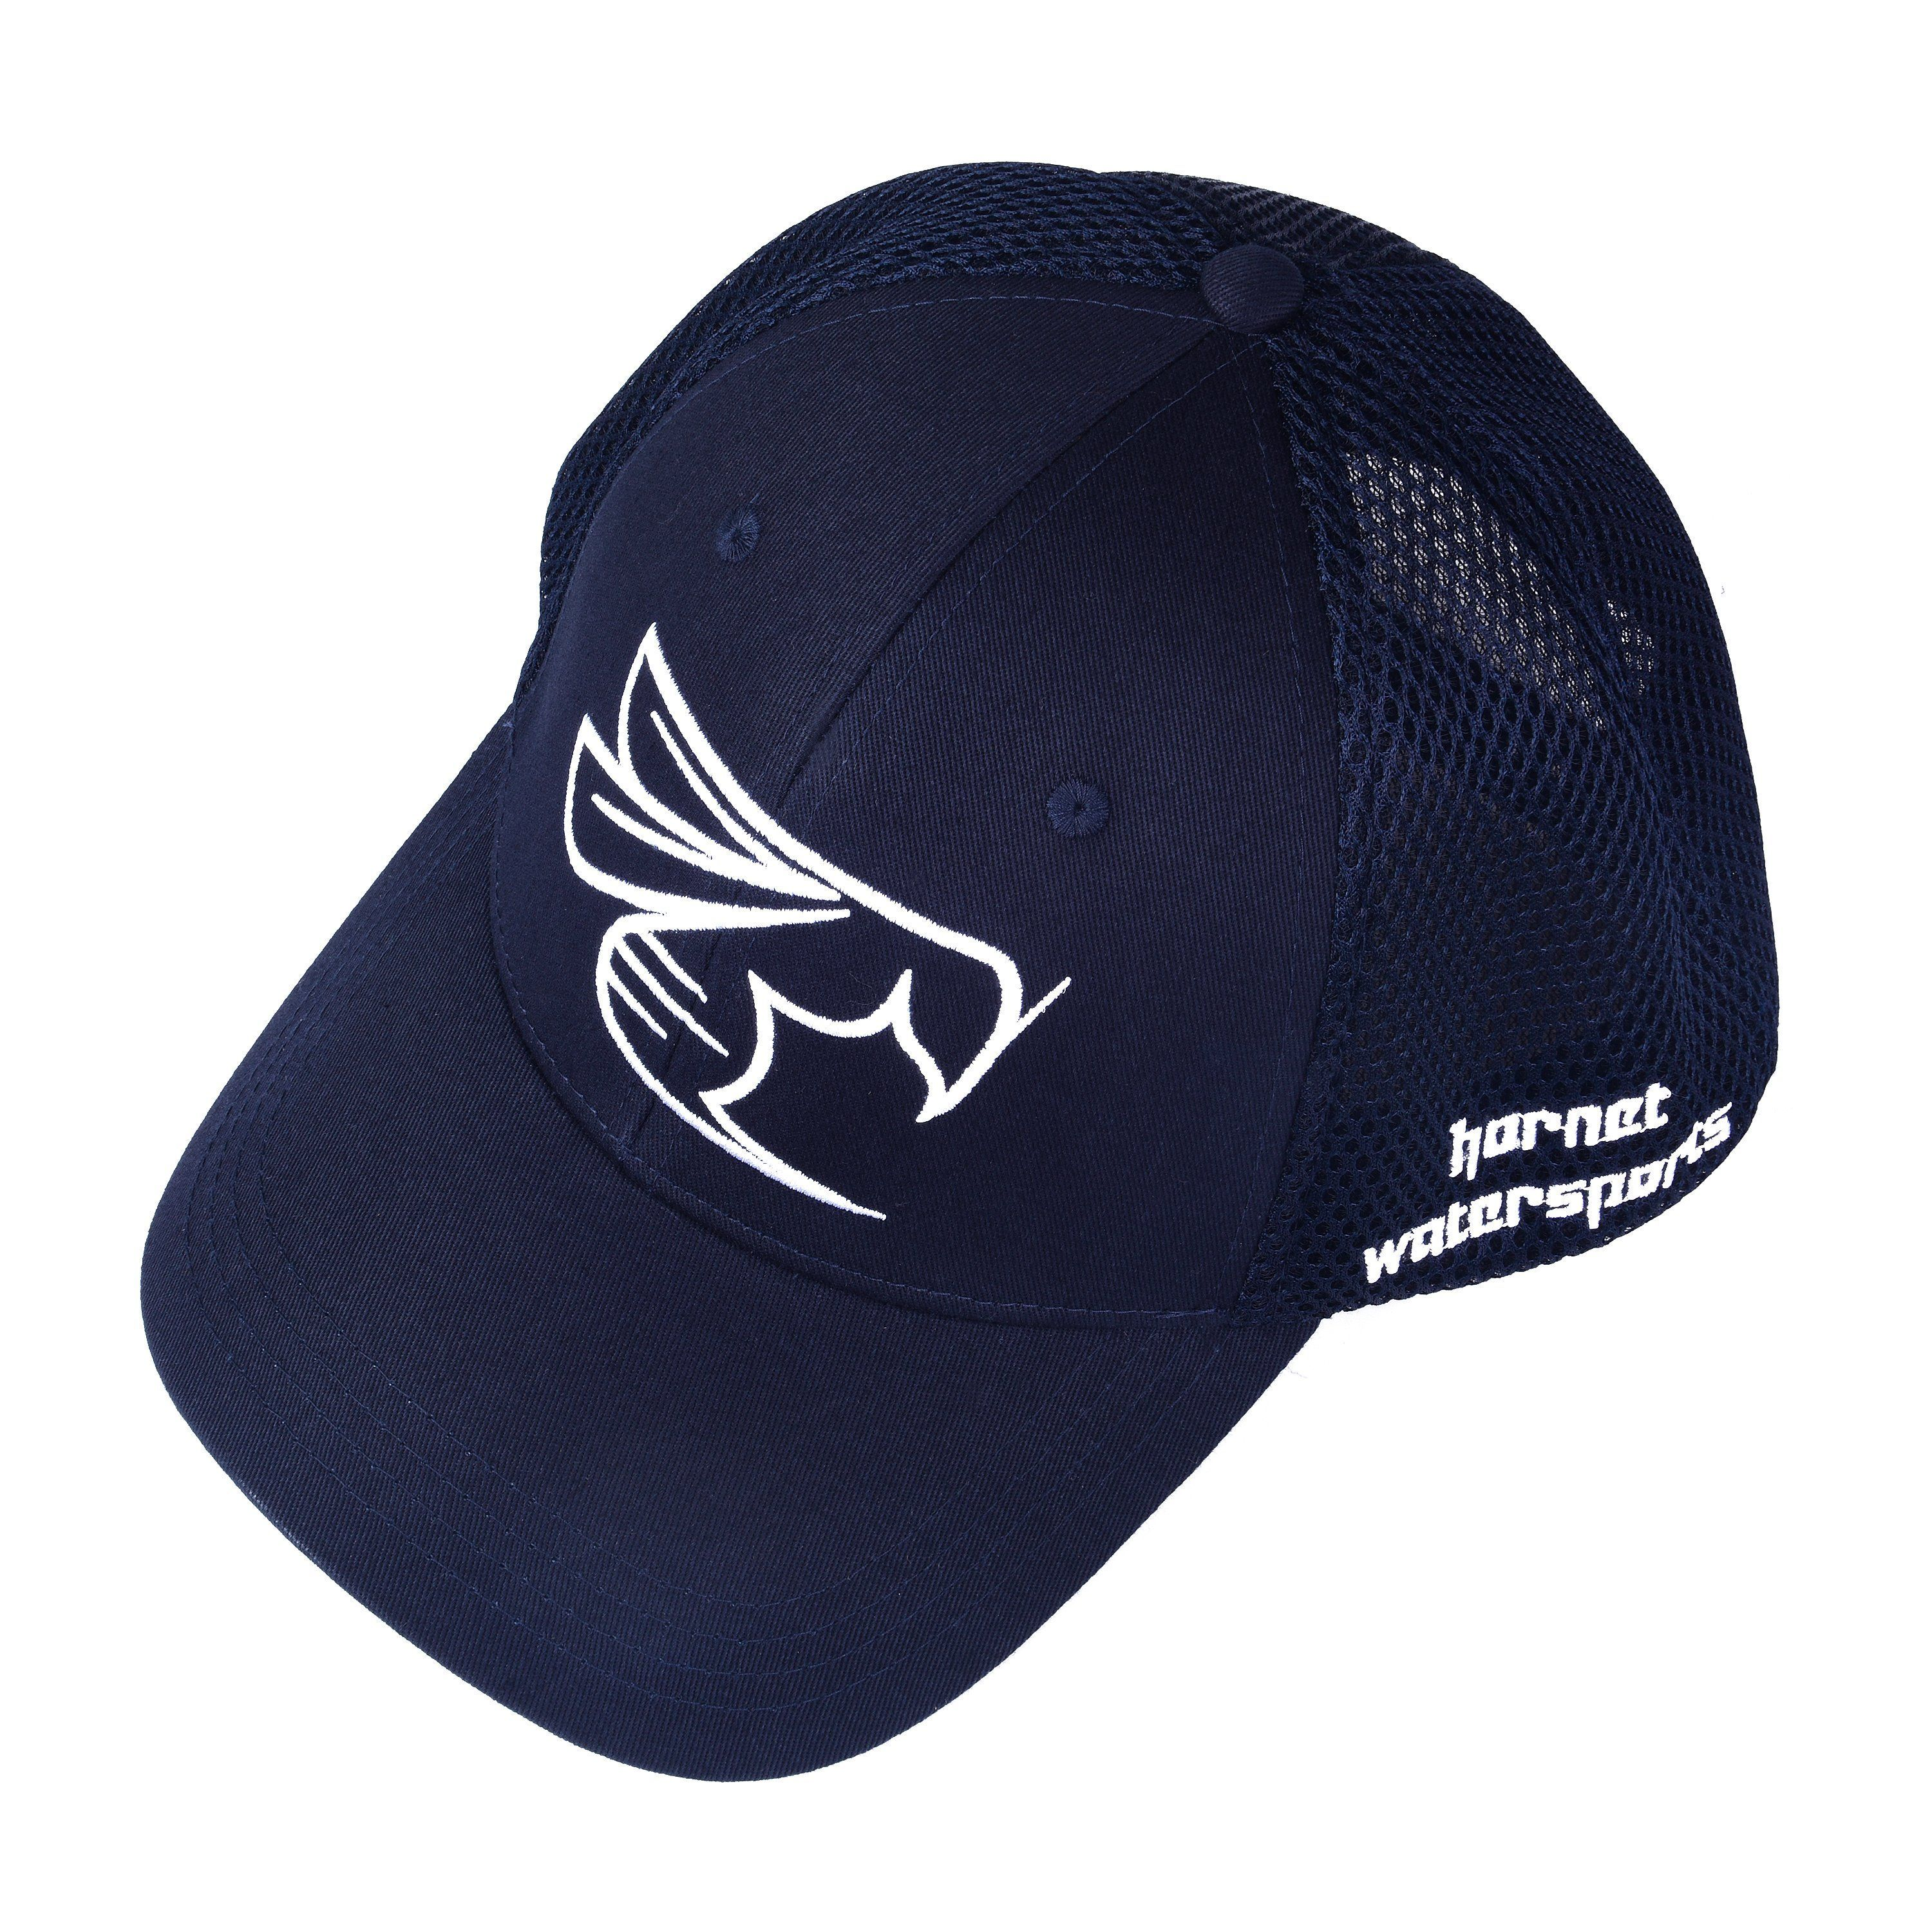 Hornet Mesh Back Cap in Navy Blue with White Logo | Cap and Products